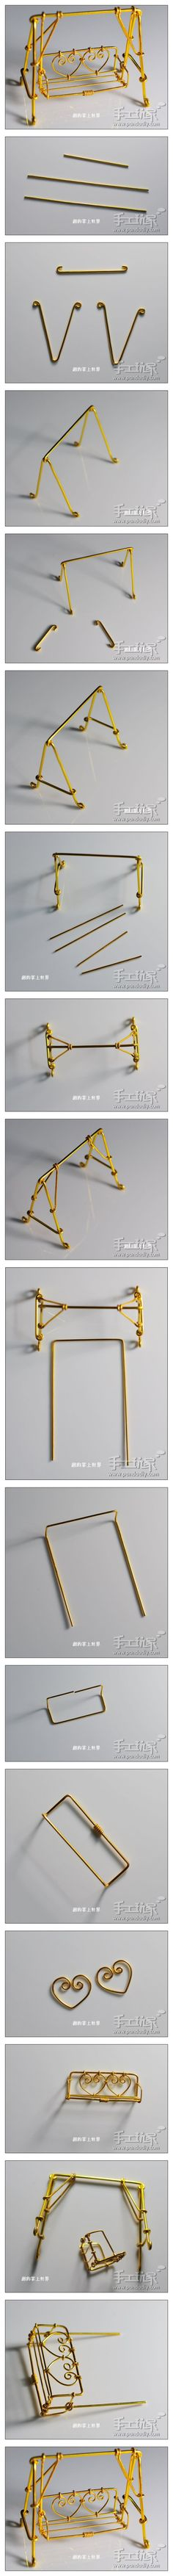 Visual DIY for miniature swinging seat for the dollhouse backyard